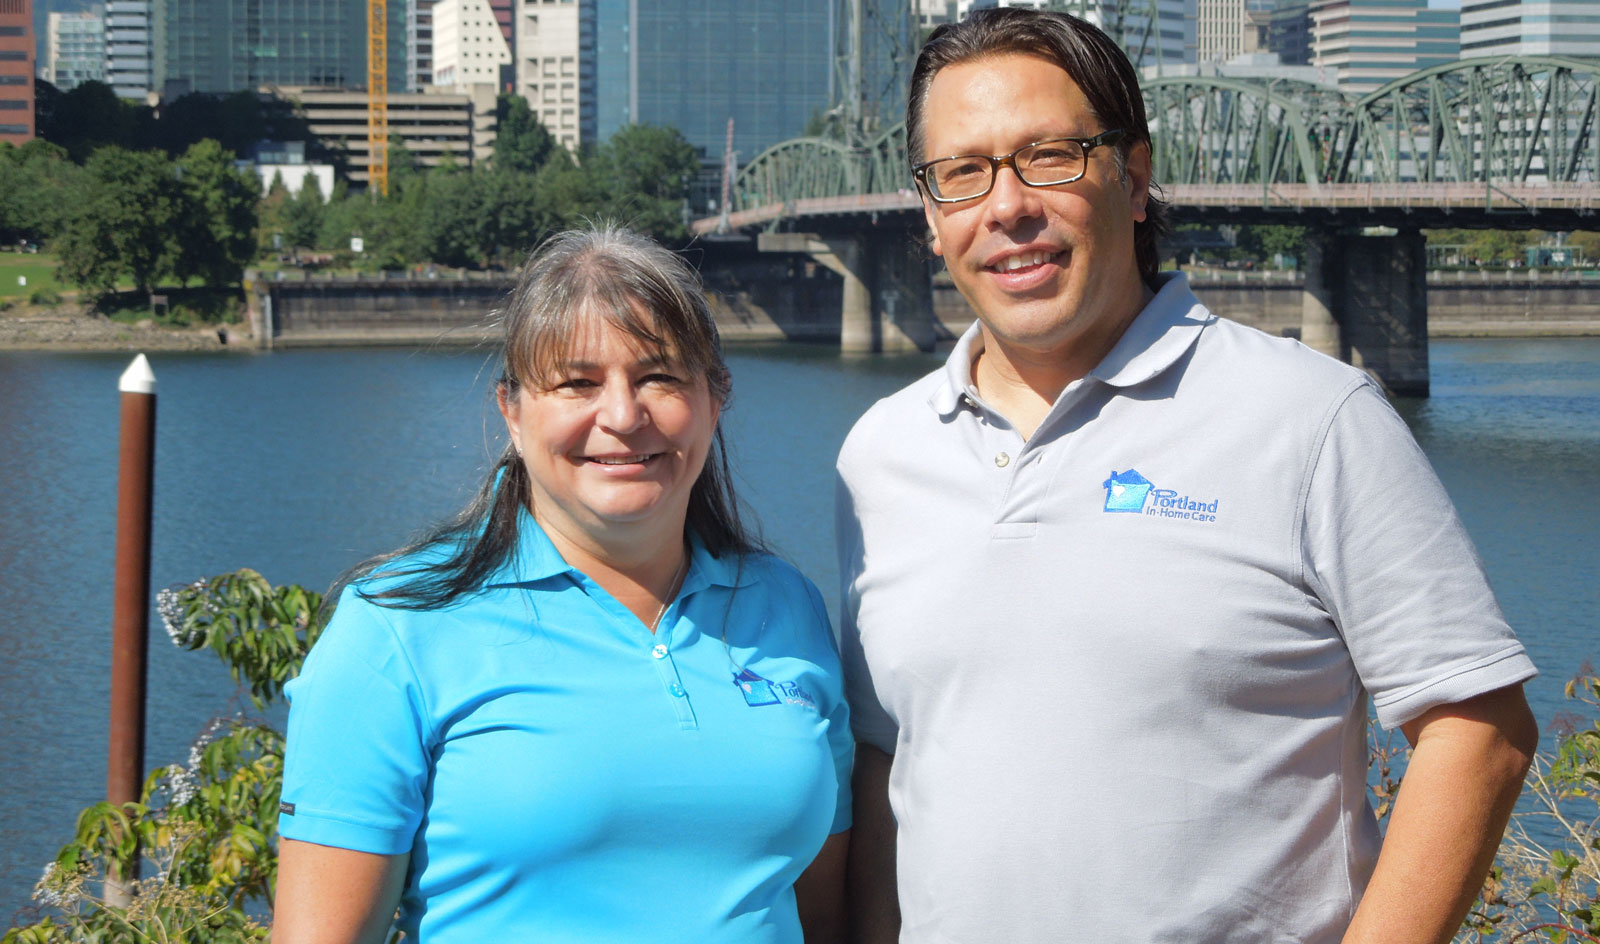 Heather O'Leary and Chris Laird of Portland InHome Care